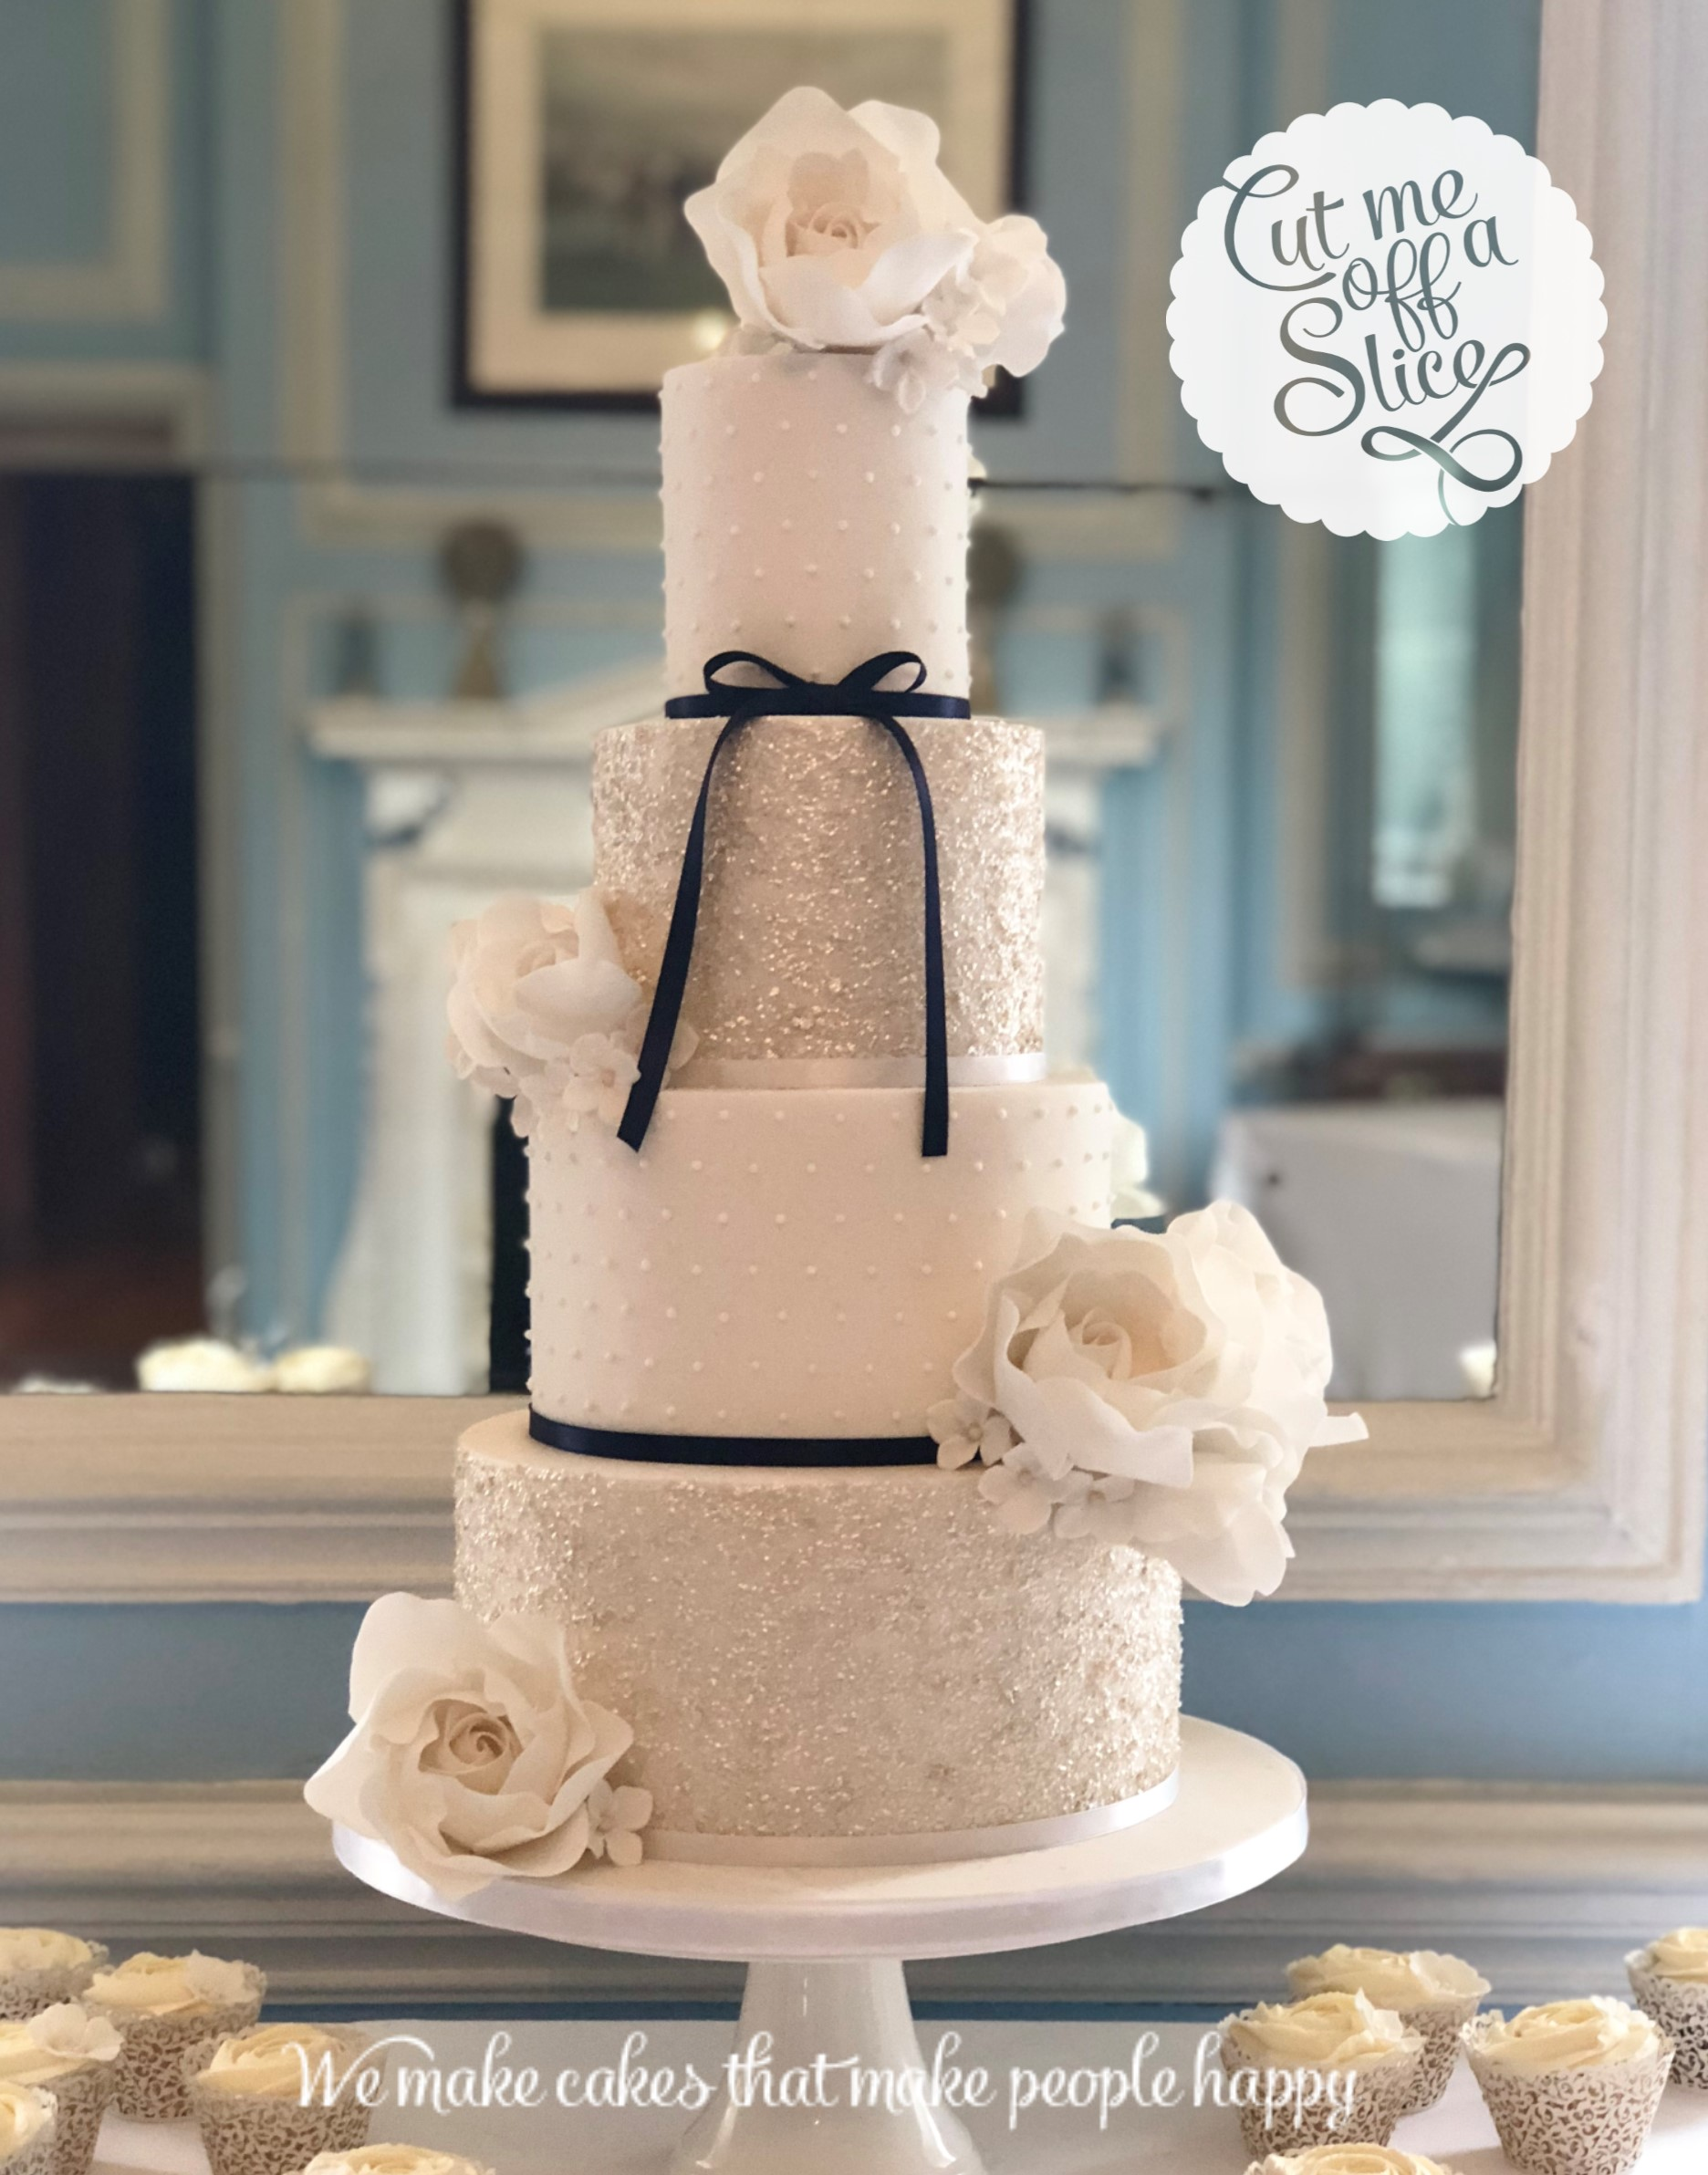 White inspiration for wedding cakes in devon by cut me off a slice well sometimes less is more and there is something simply beautiful and classic about a white on white wedding cake crisps sharp white lines junglespirit Images